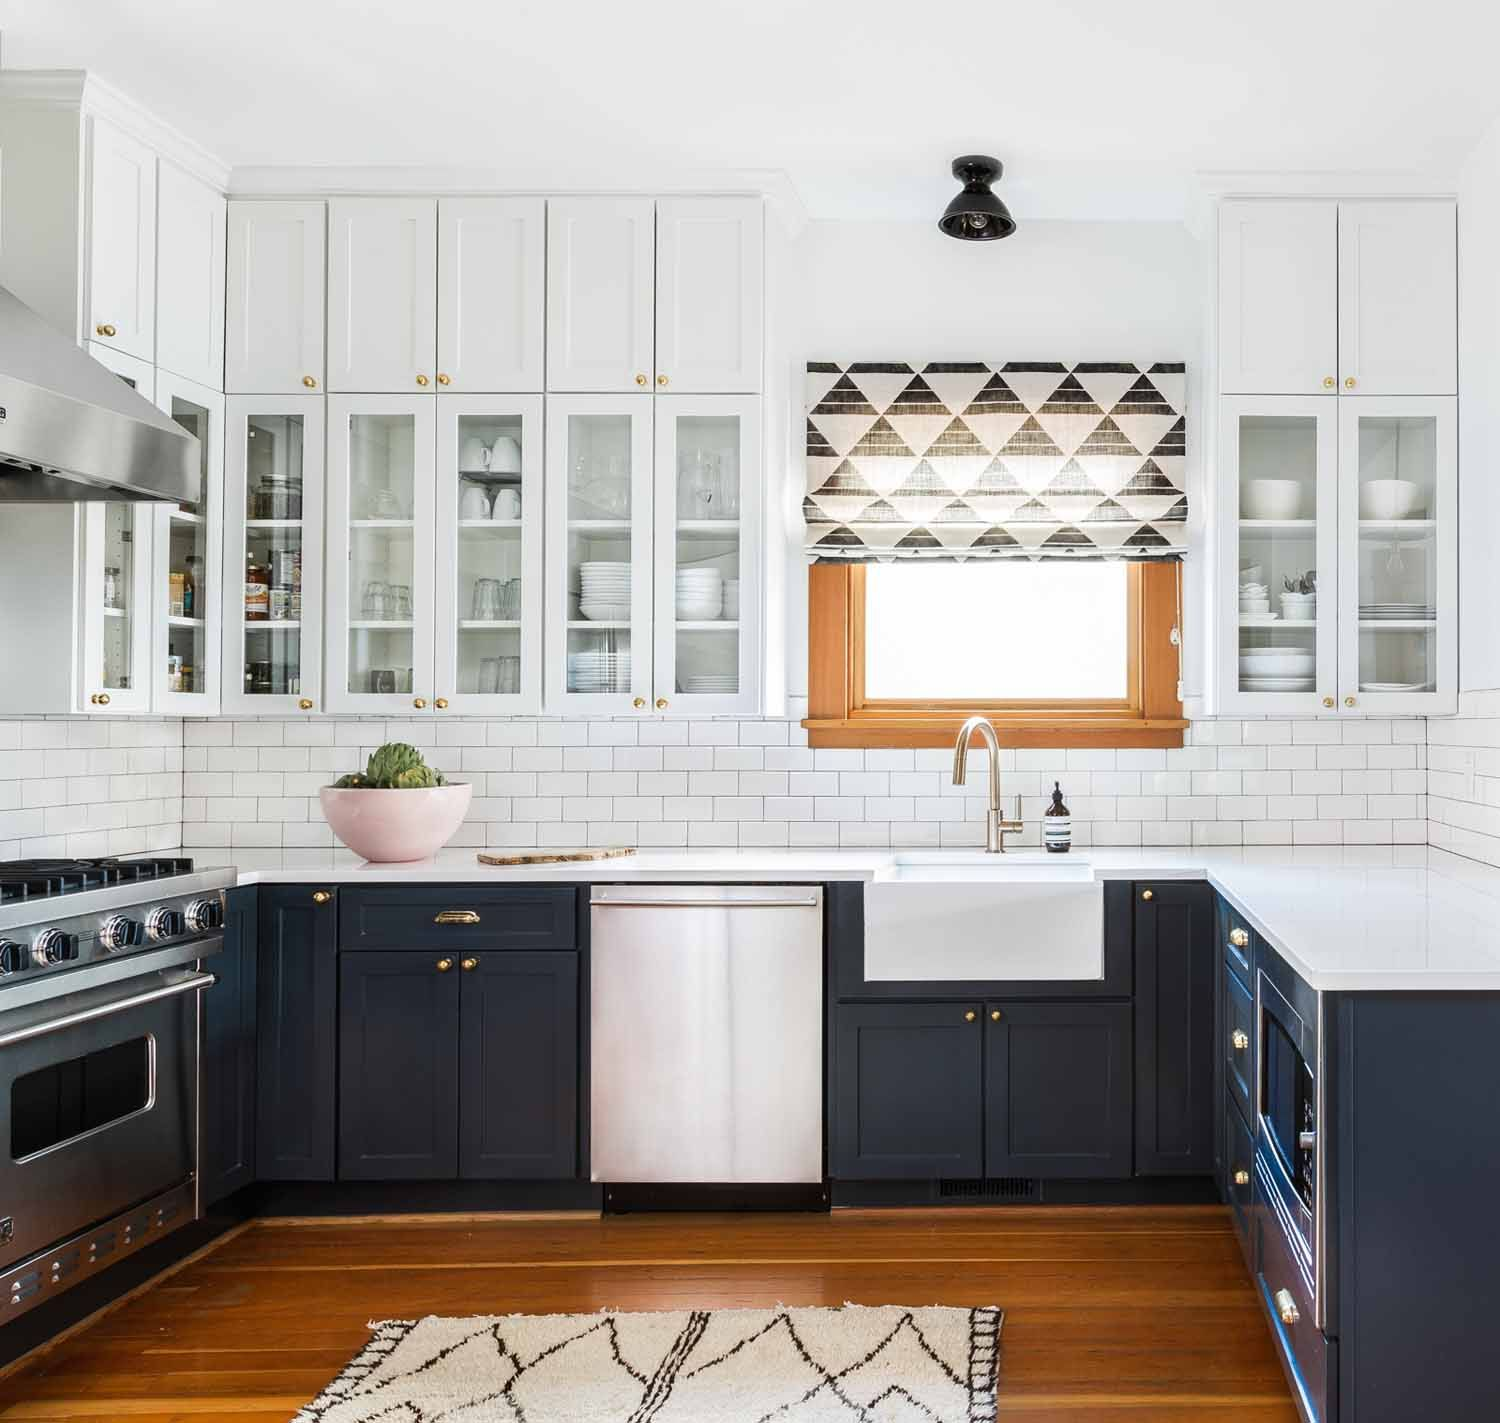 Two Tone Kitchen Cupboards These 35 two-tone kitchen cabinets will reinsure your favorite spot in the  house with contemporary style and original detailing. Check it out!